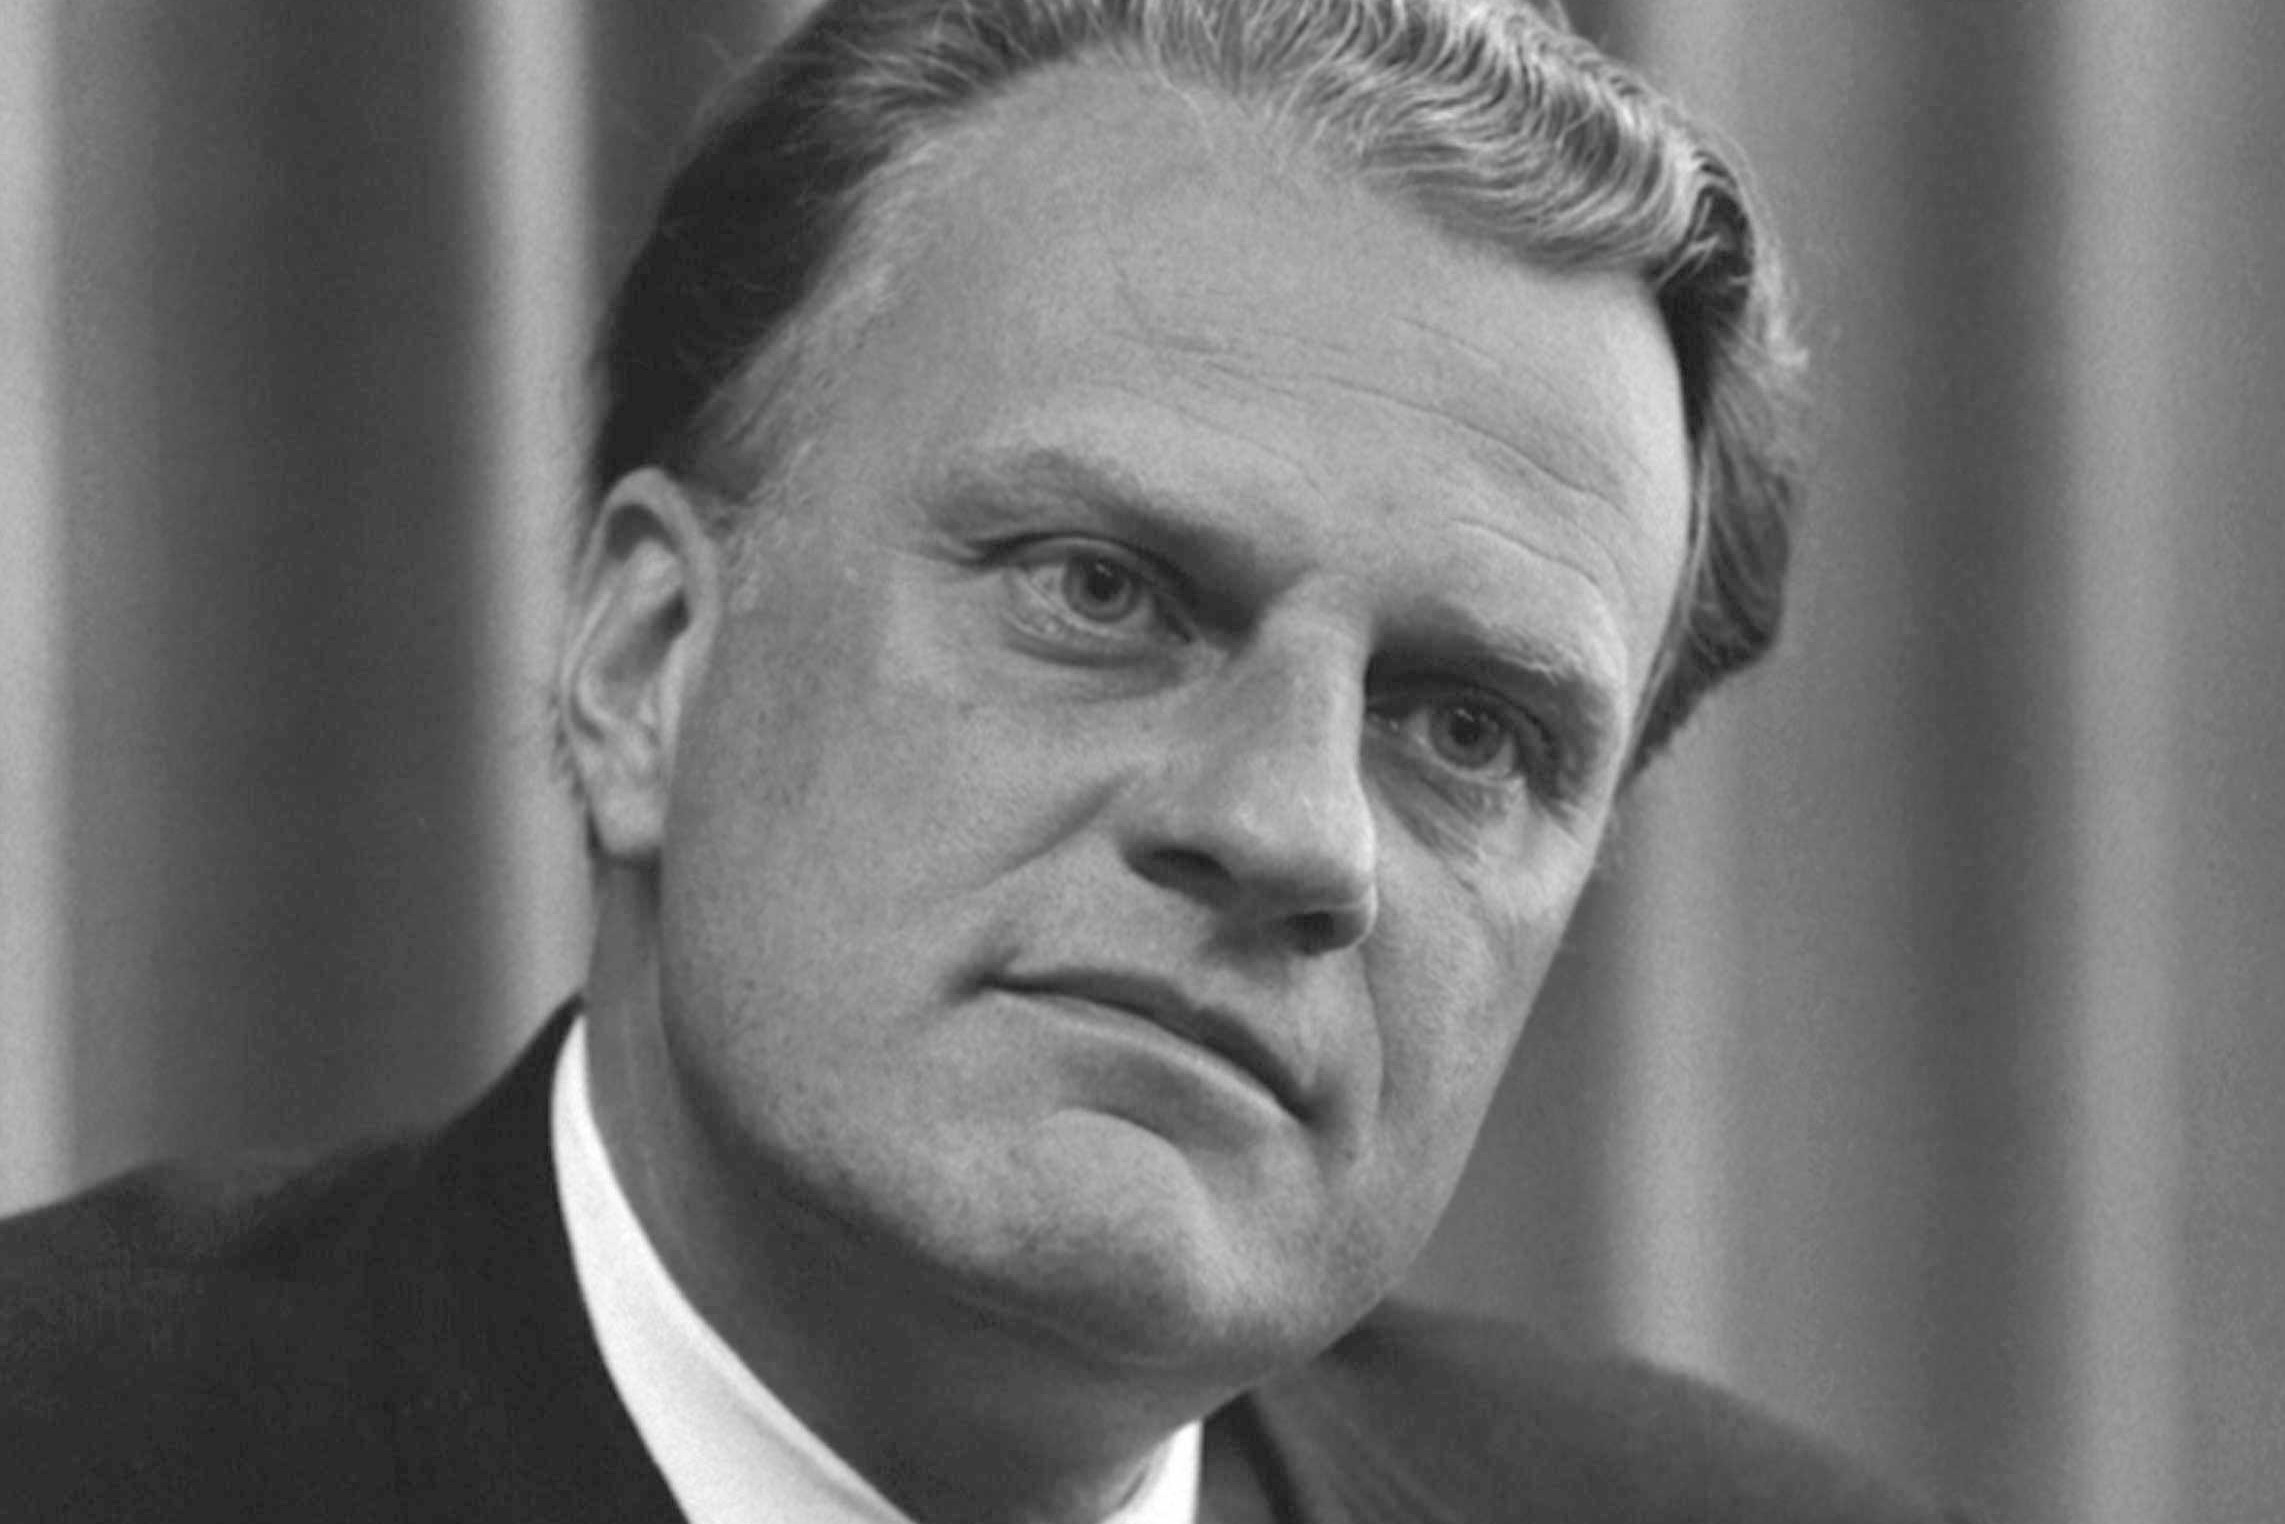 Billy_Graham_bw_photo__April_11__1966_(2).jpg